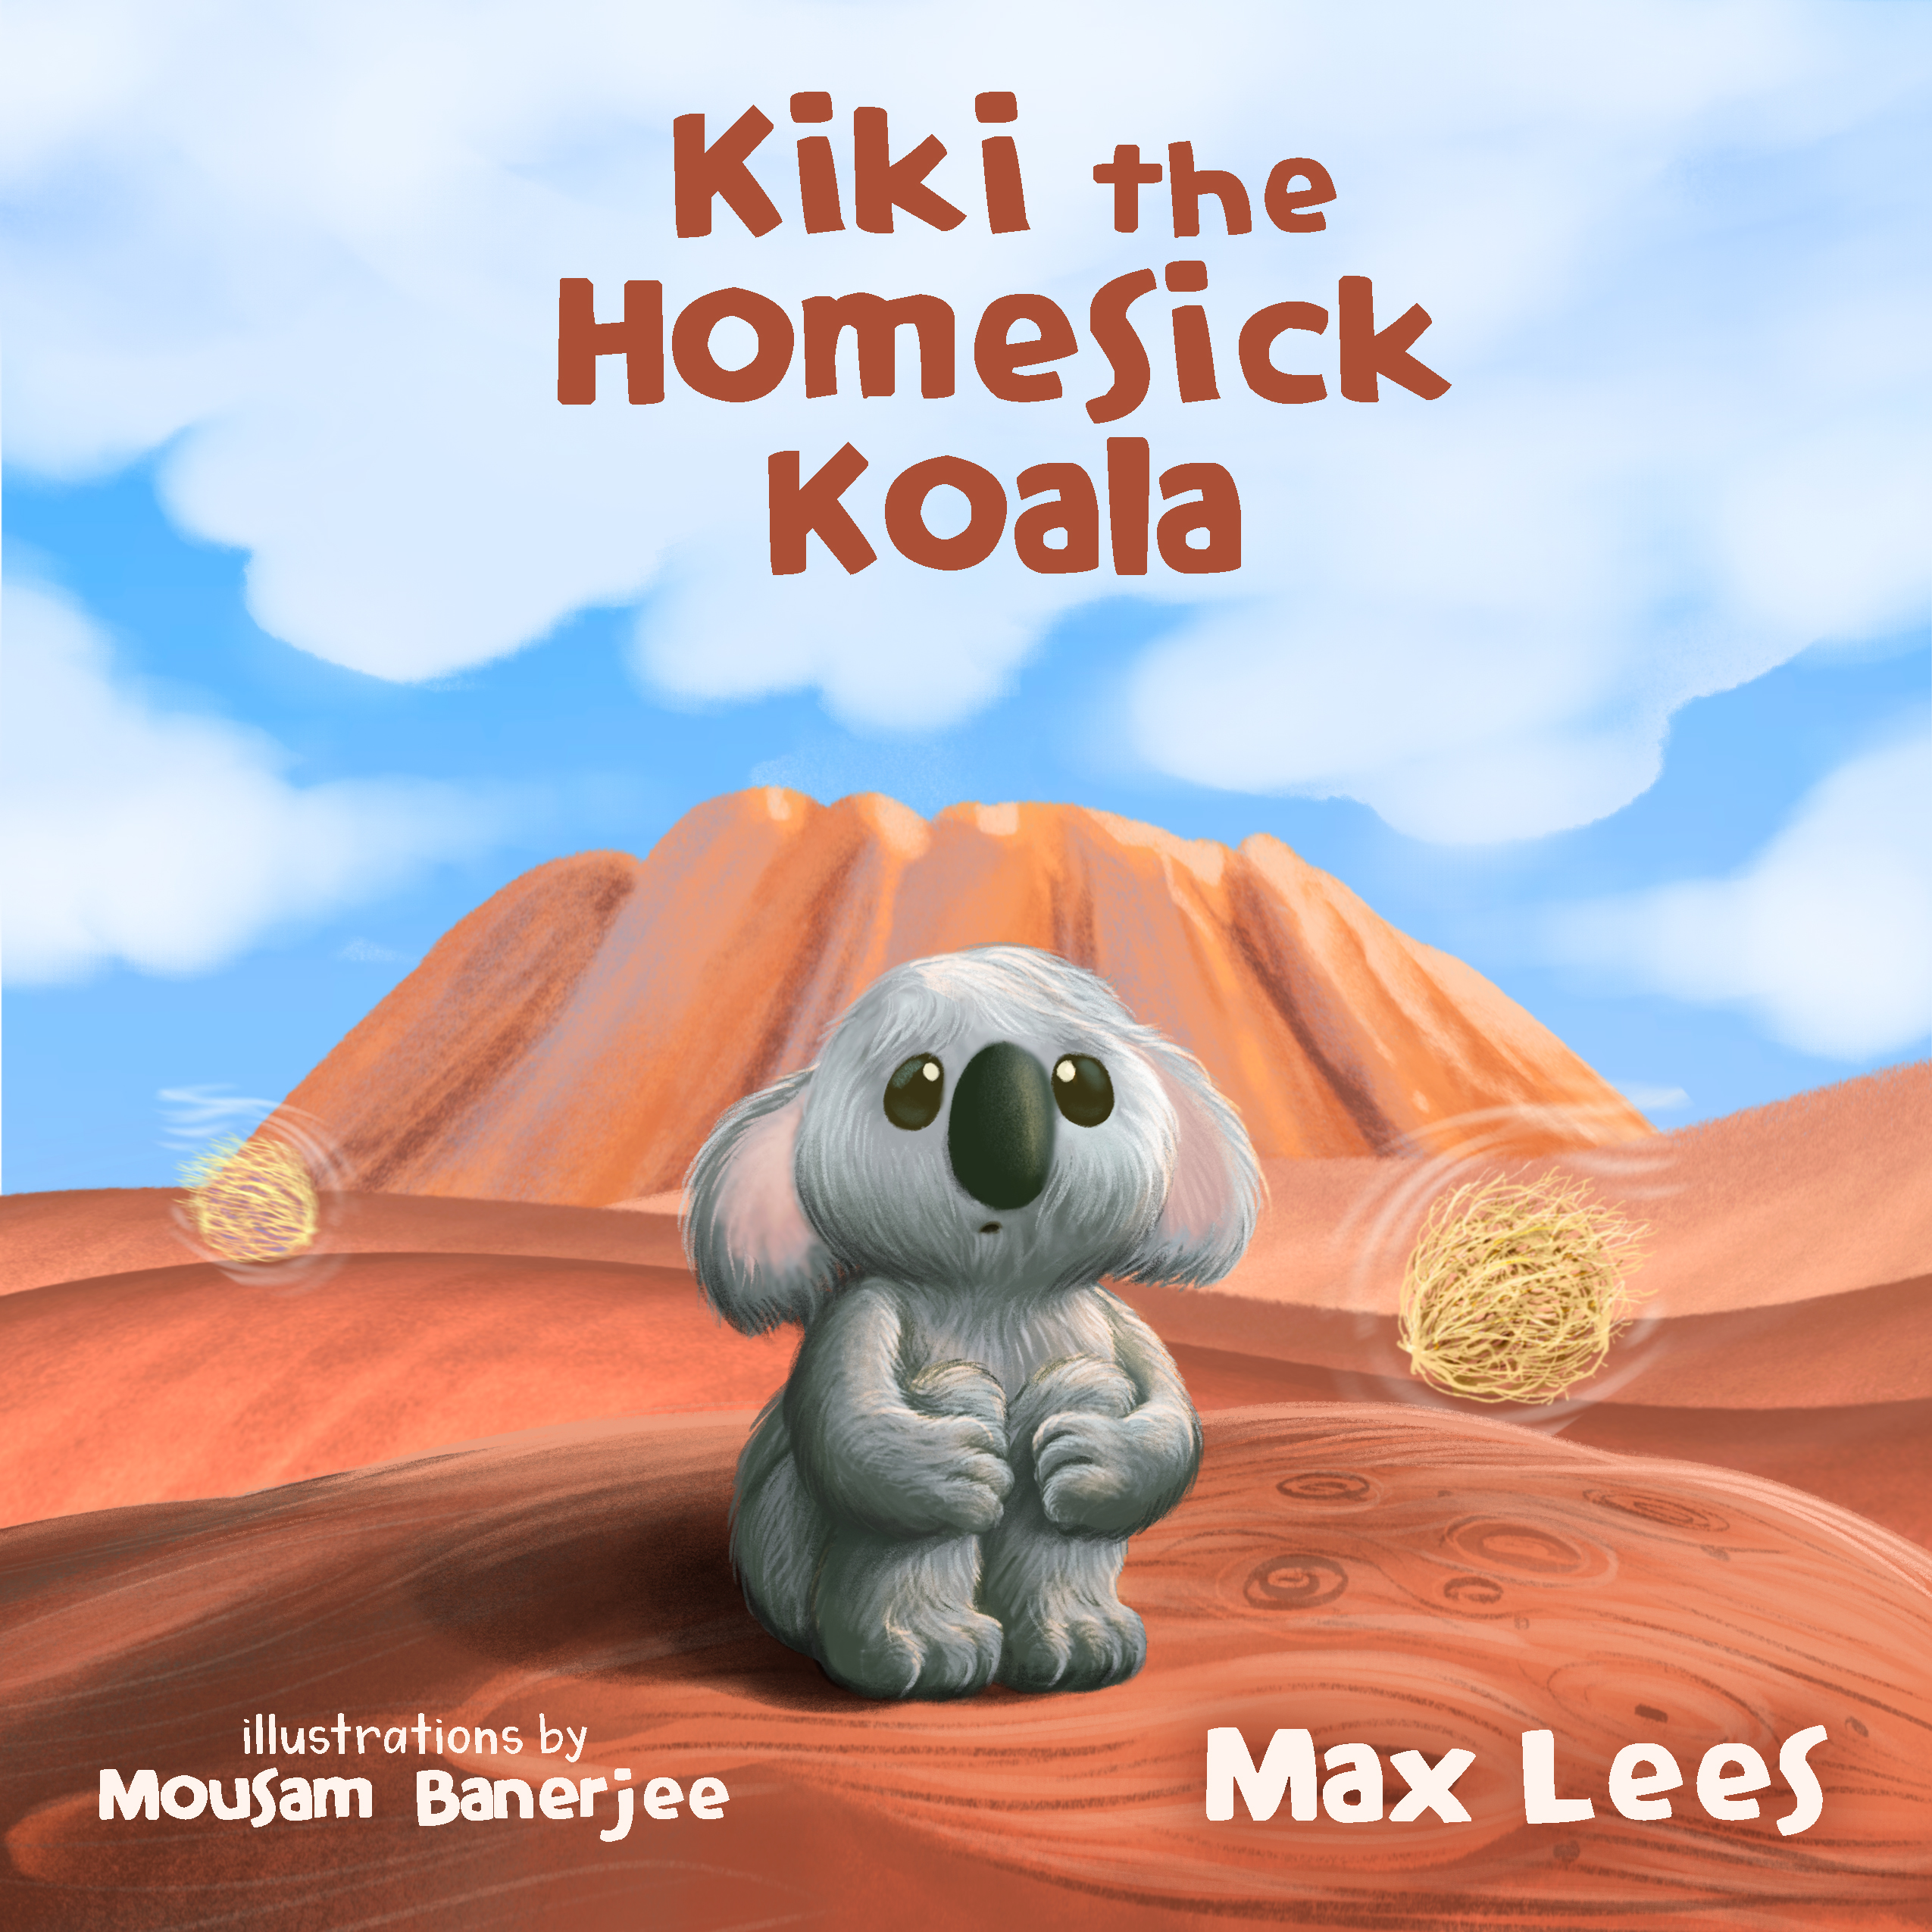 Kiki the Homesick Koala by Max Lees Children's Book Review